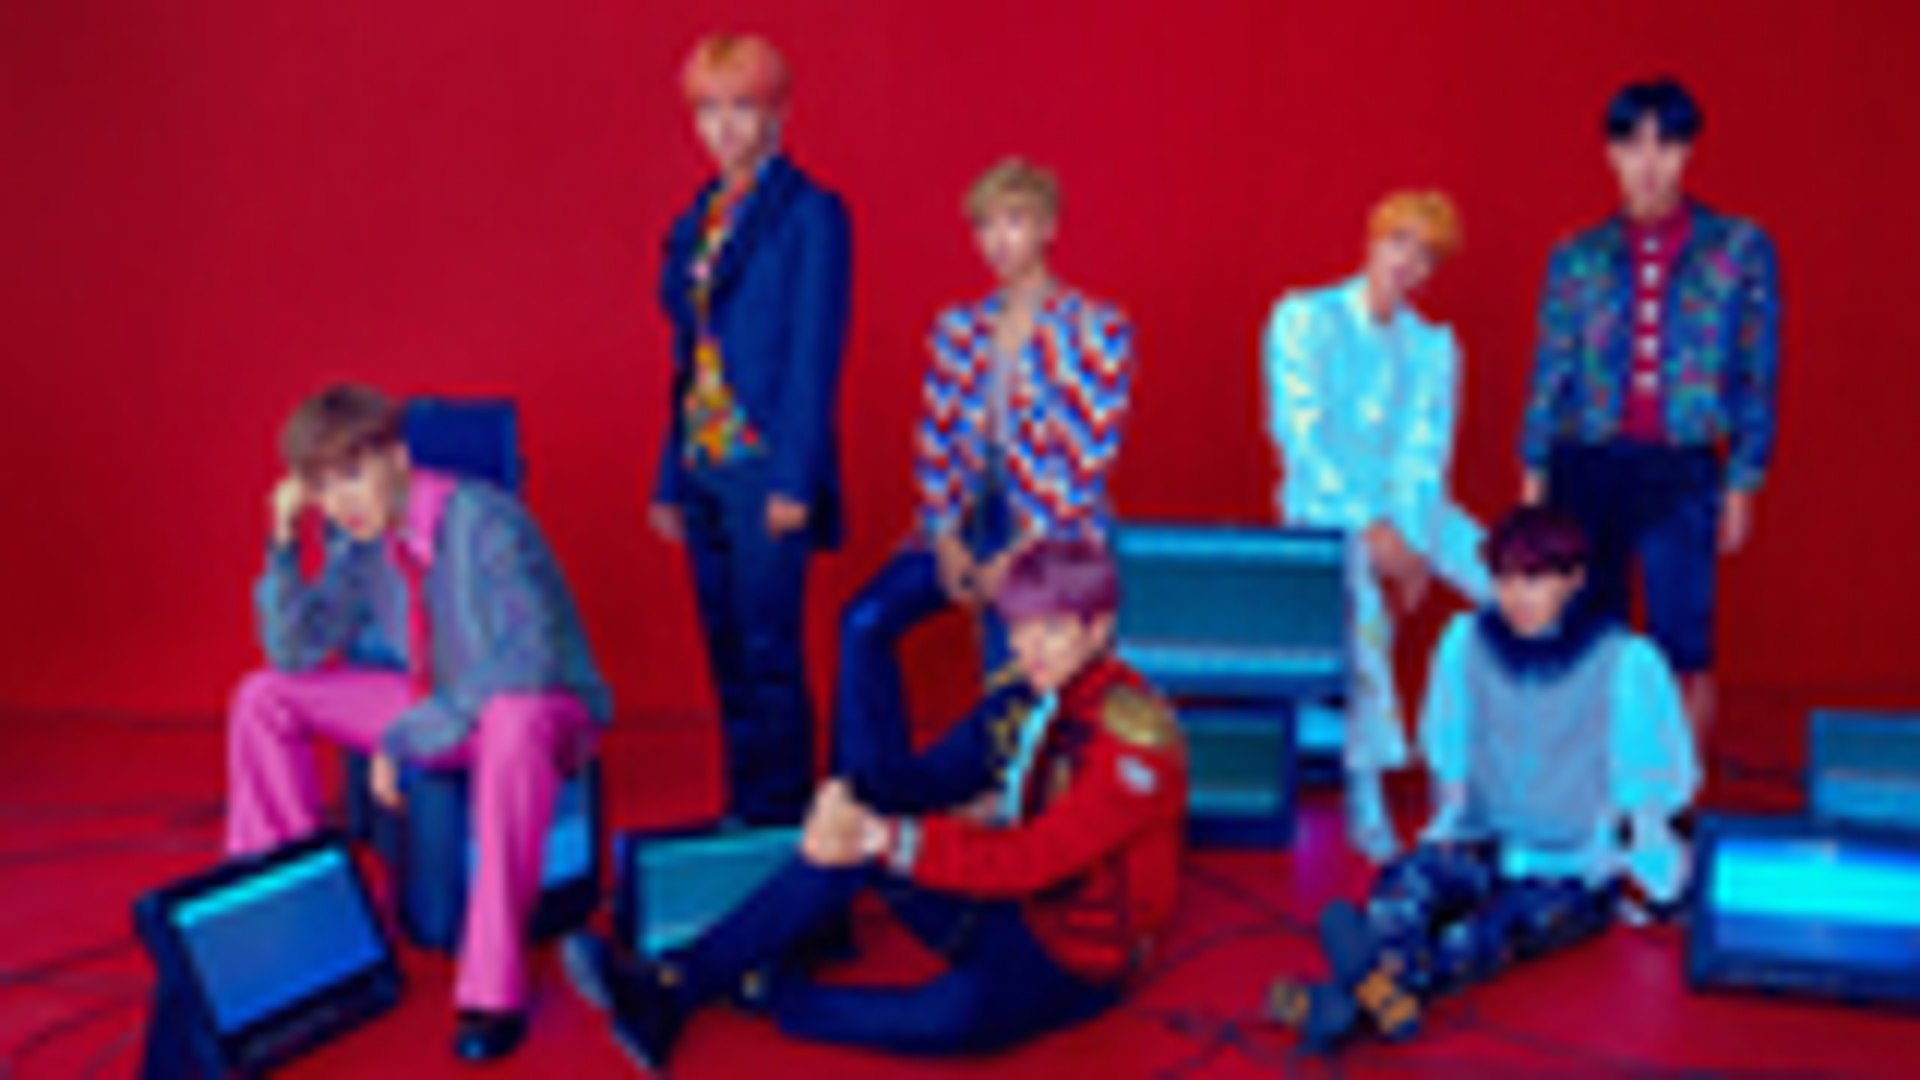 Bts Wallpaper Persona Bts Map Of The Soul Persona Laptop